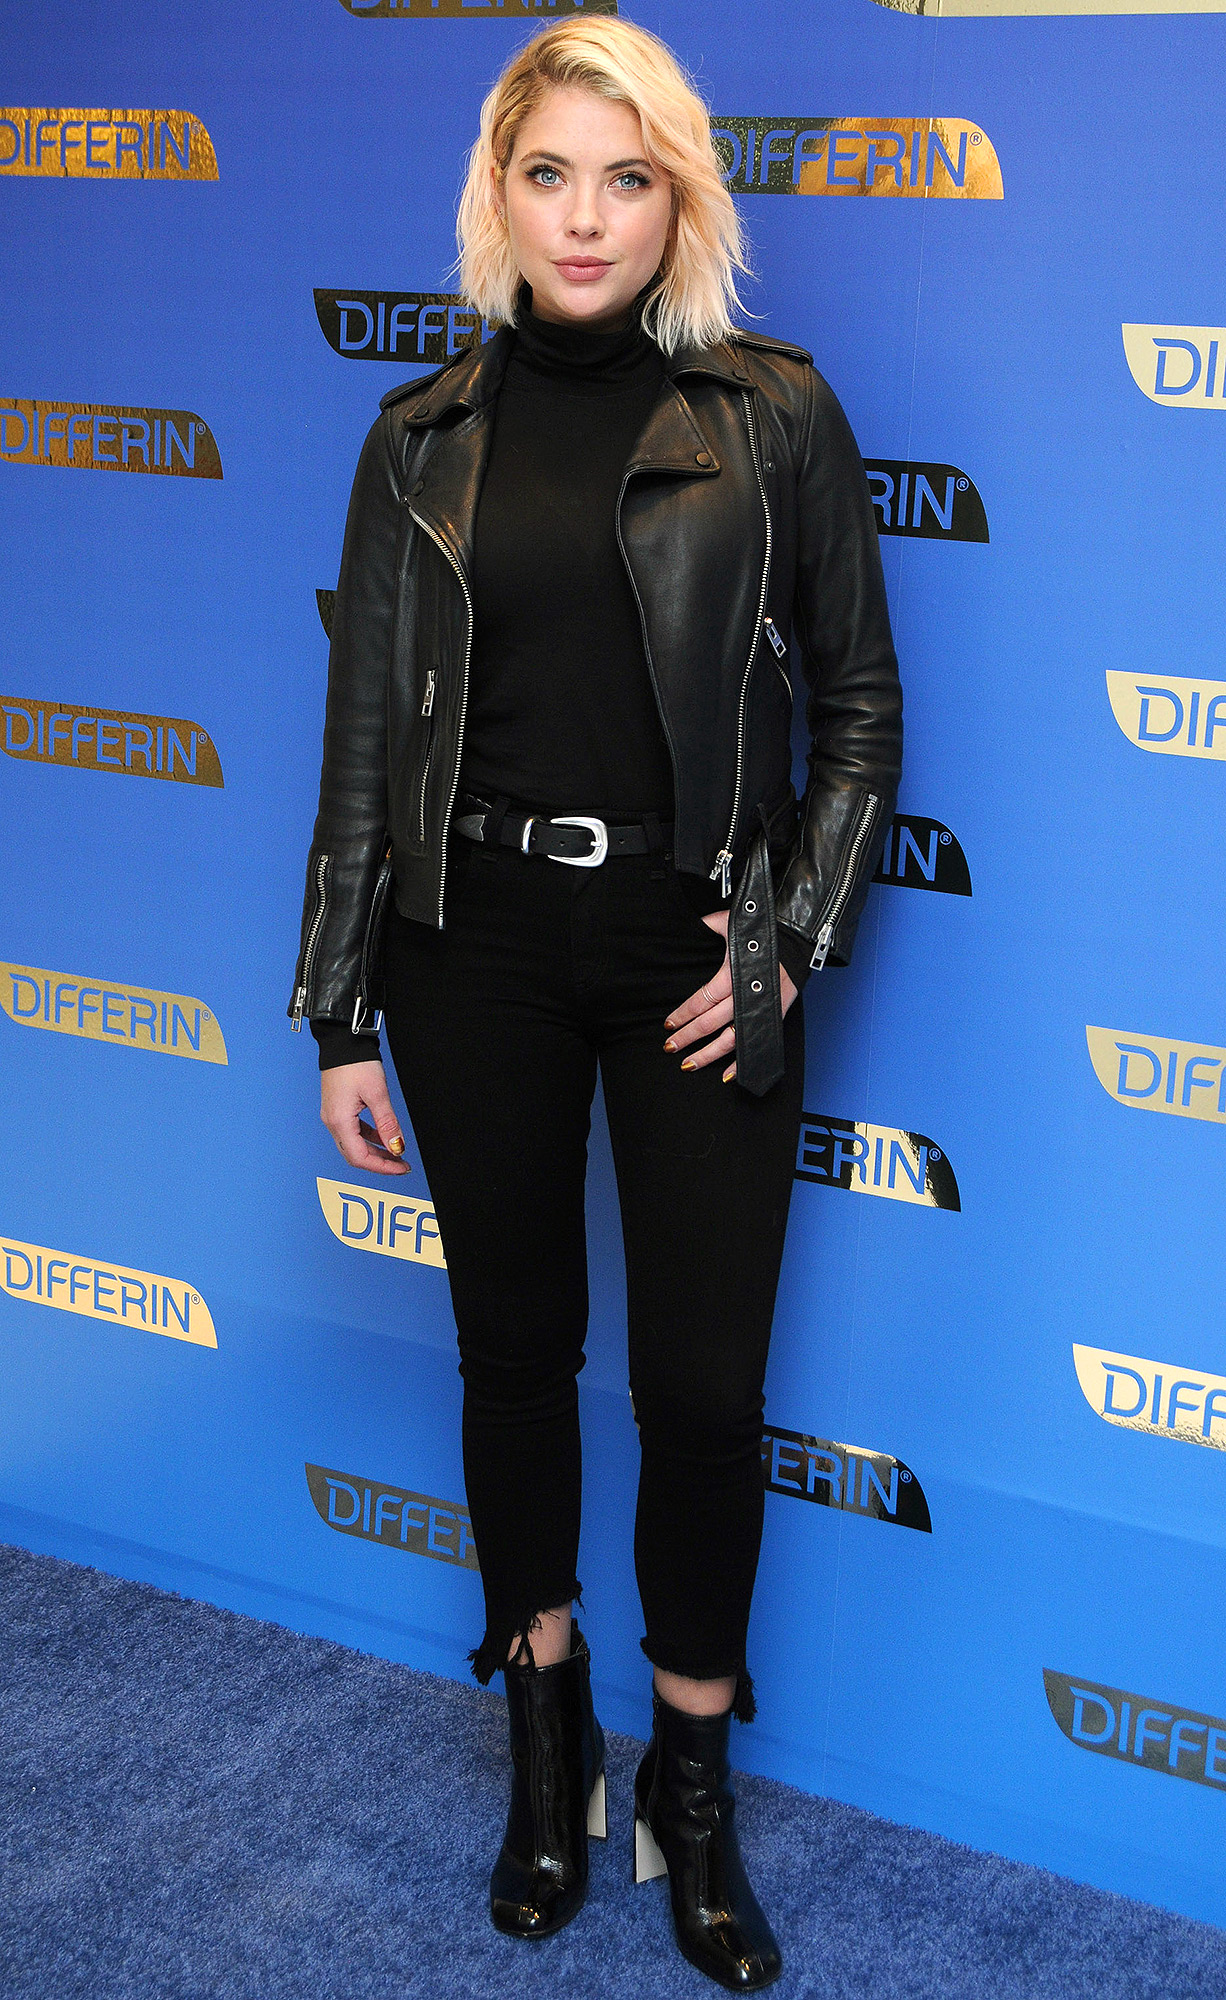 Ashley Benson celebrates the national launch of DIFFERIN GEL in NYC